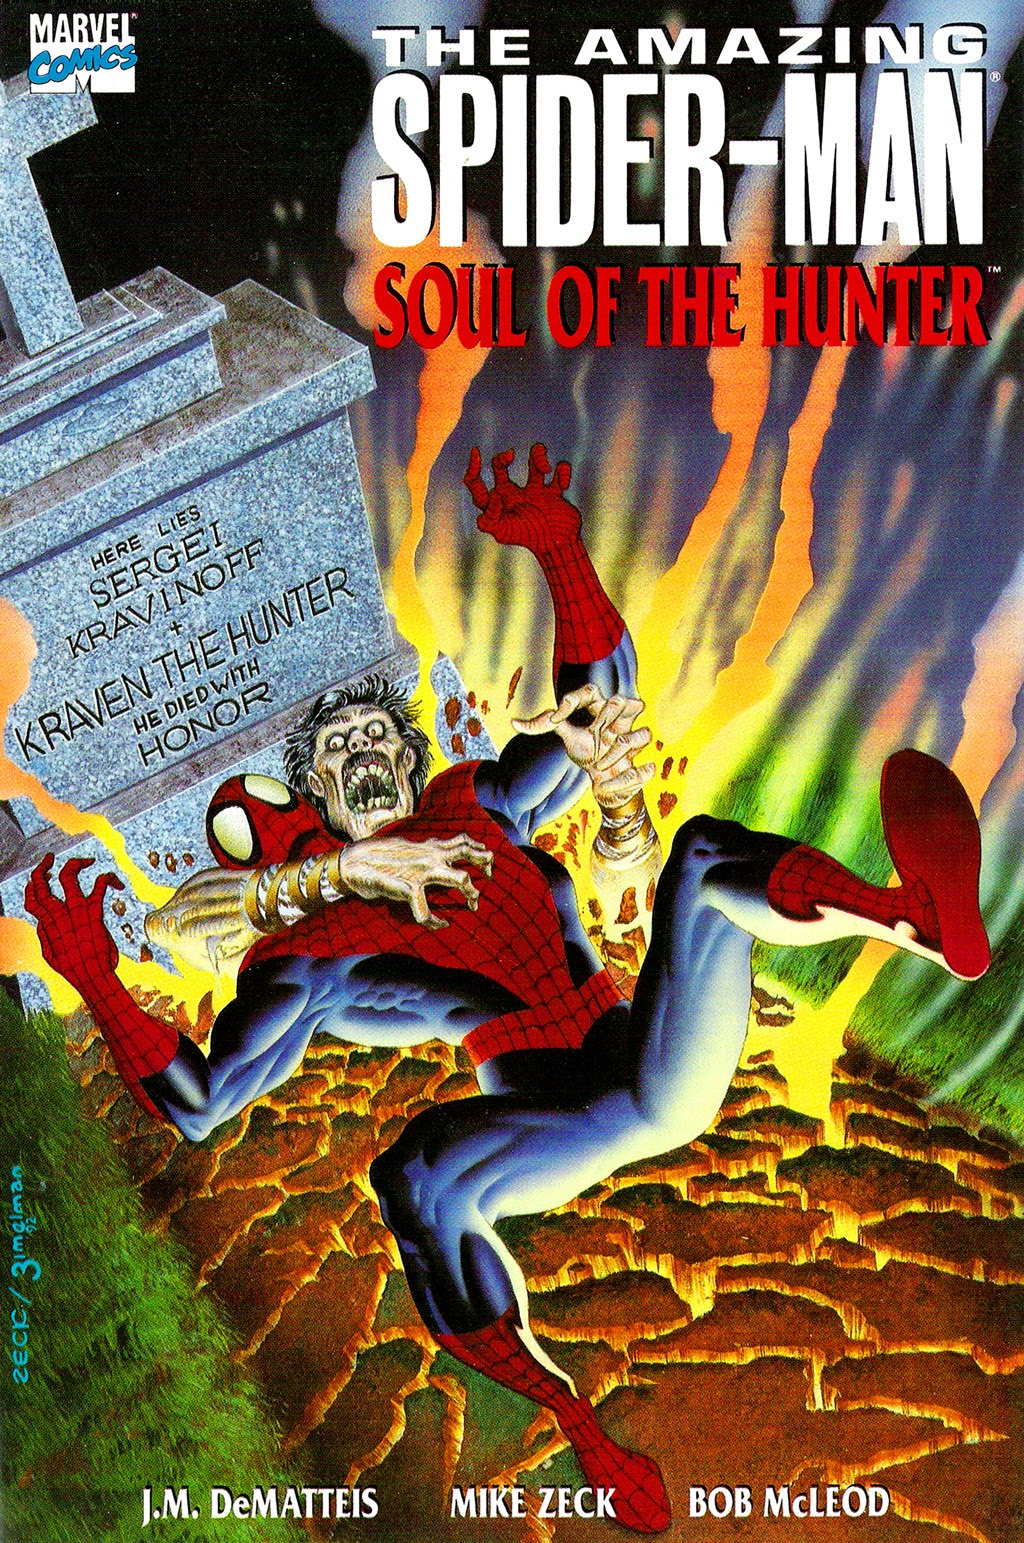 Read online The Amazing Spider-Man: Soul of the Hunter comic -  Issue # Full - 1